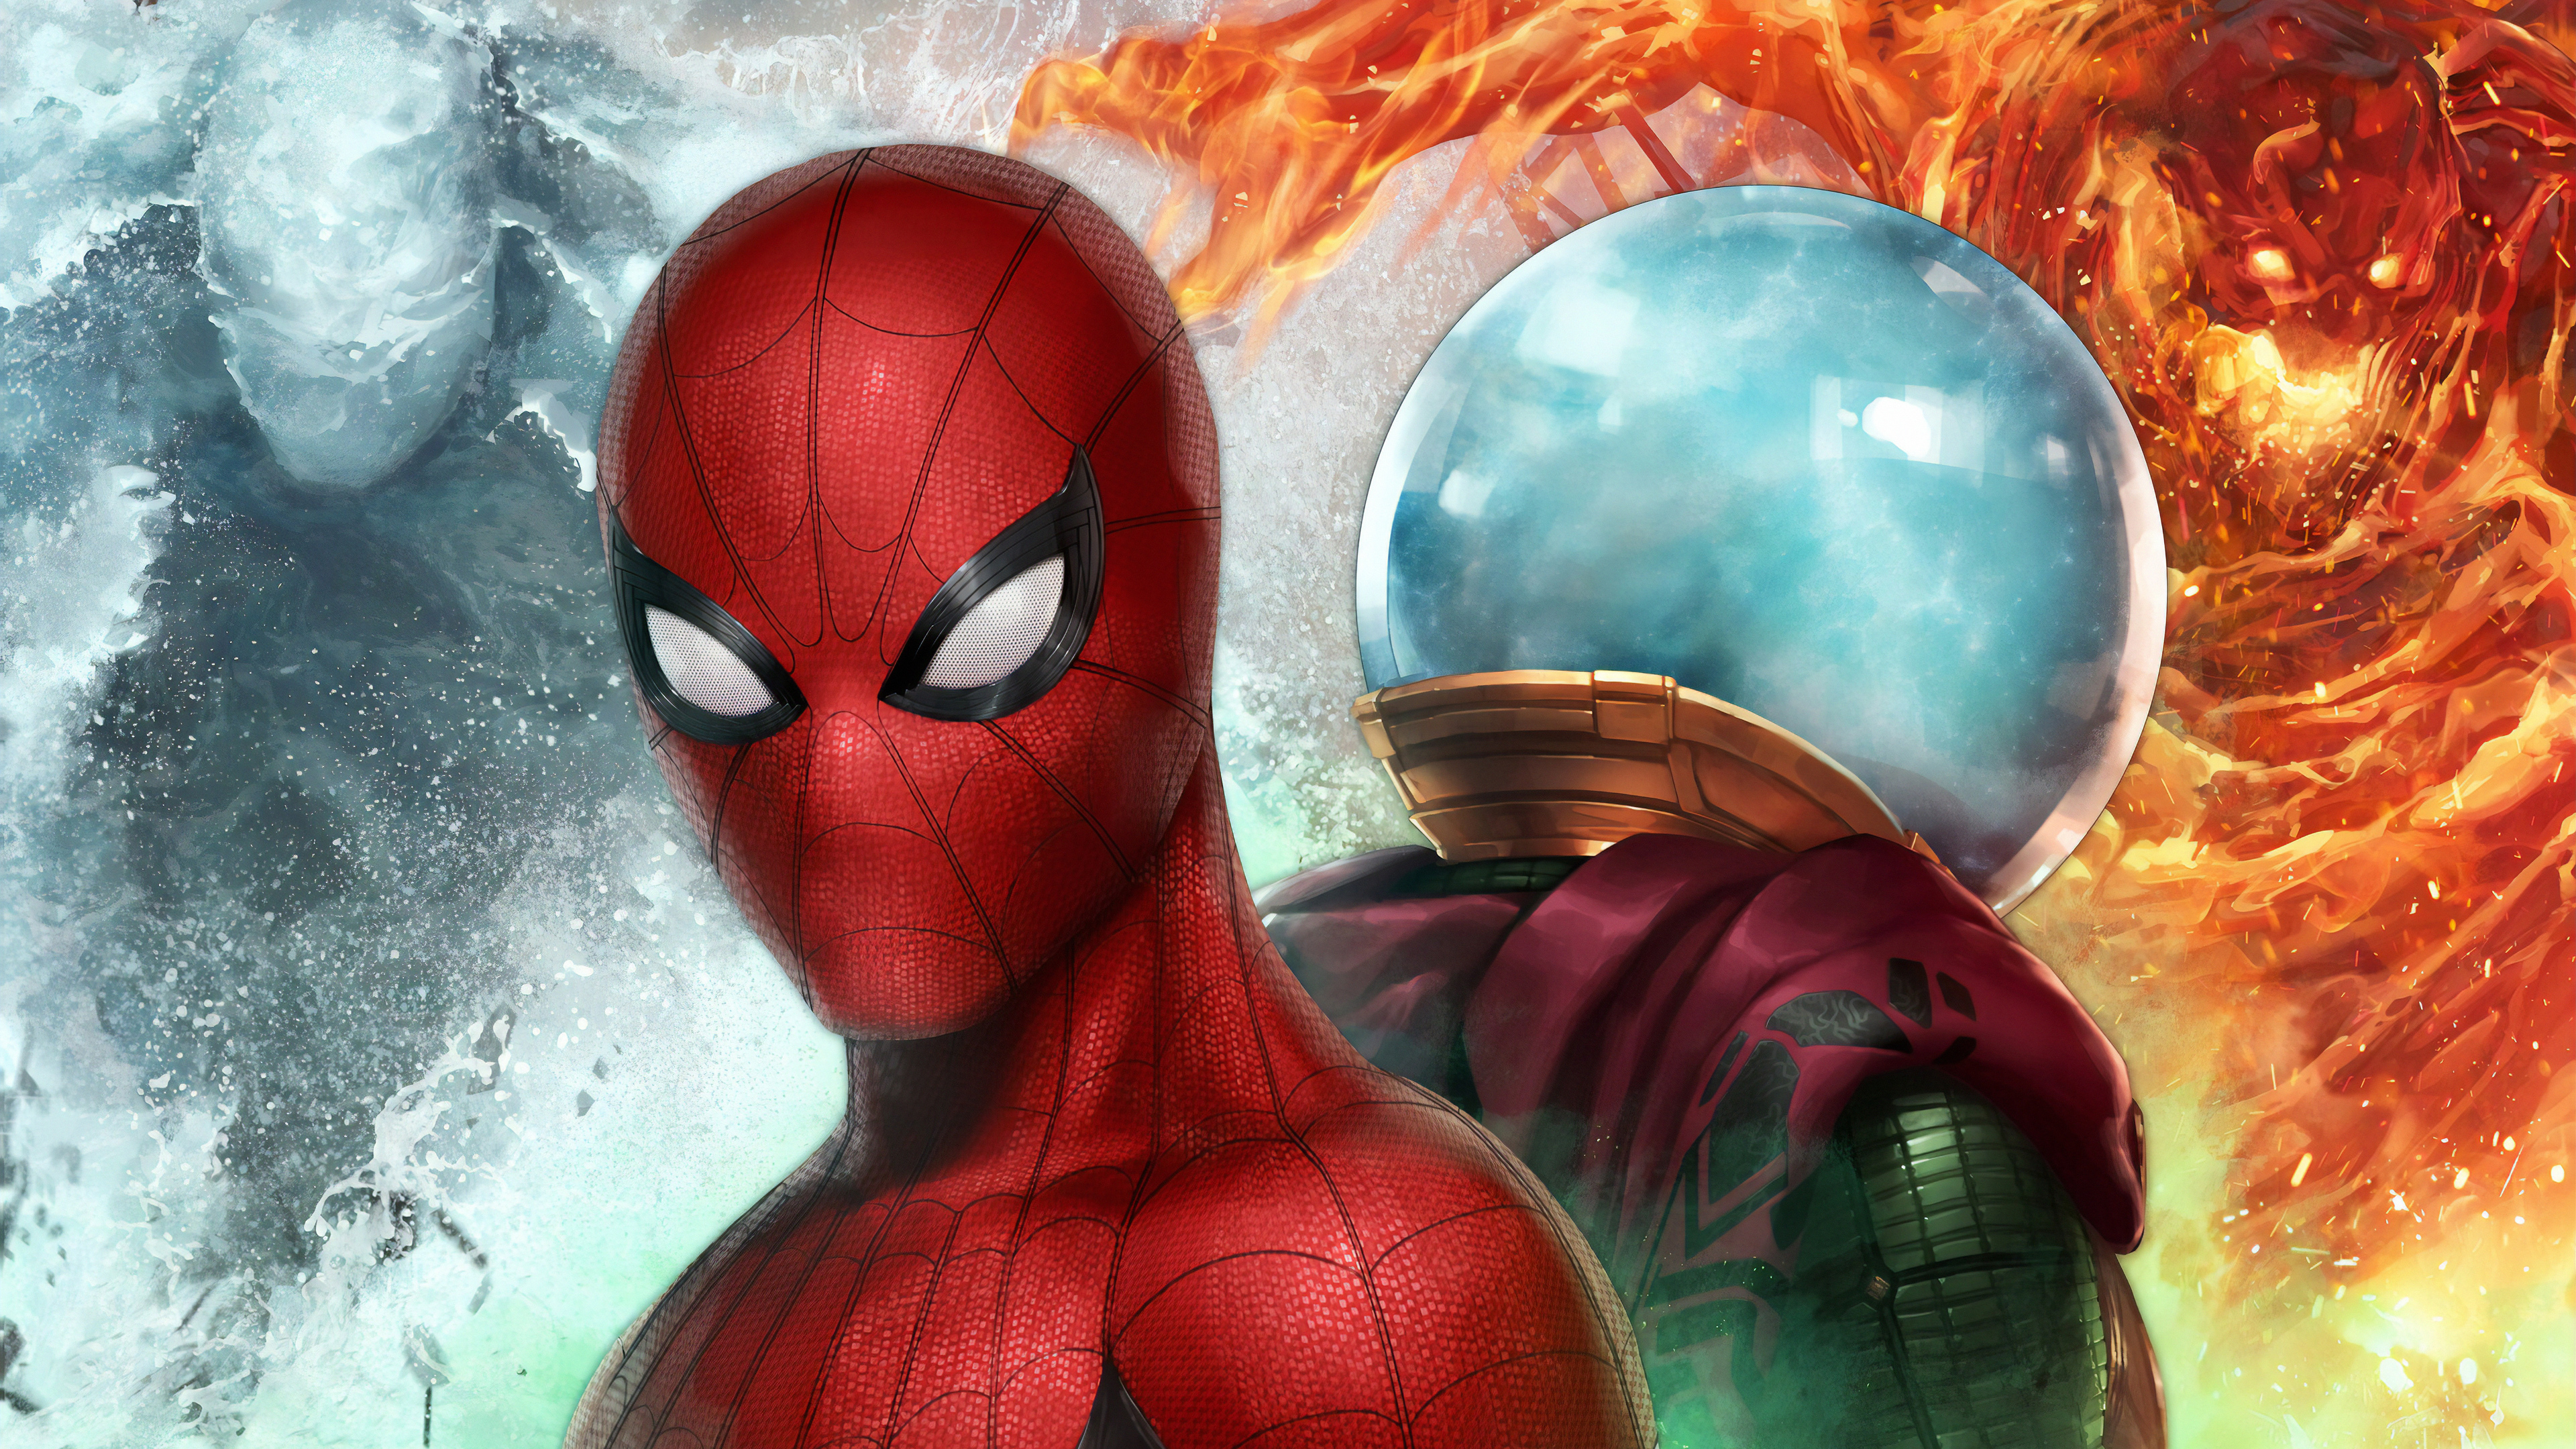 spiderman vs mysterio in marvel future fight 1568056370 - Spiderman Vs Mysterio In Marvel Future Fight - superheroes wallpapers, spiderman wallpapers, mysterio wallpapers, marvel future fight wallpapers, hd-wallpapers, games wallpapers, 4k-wallpapers